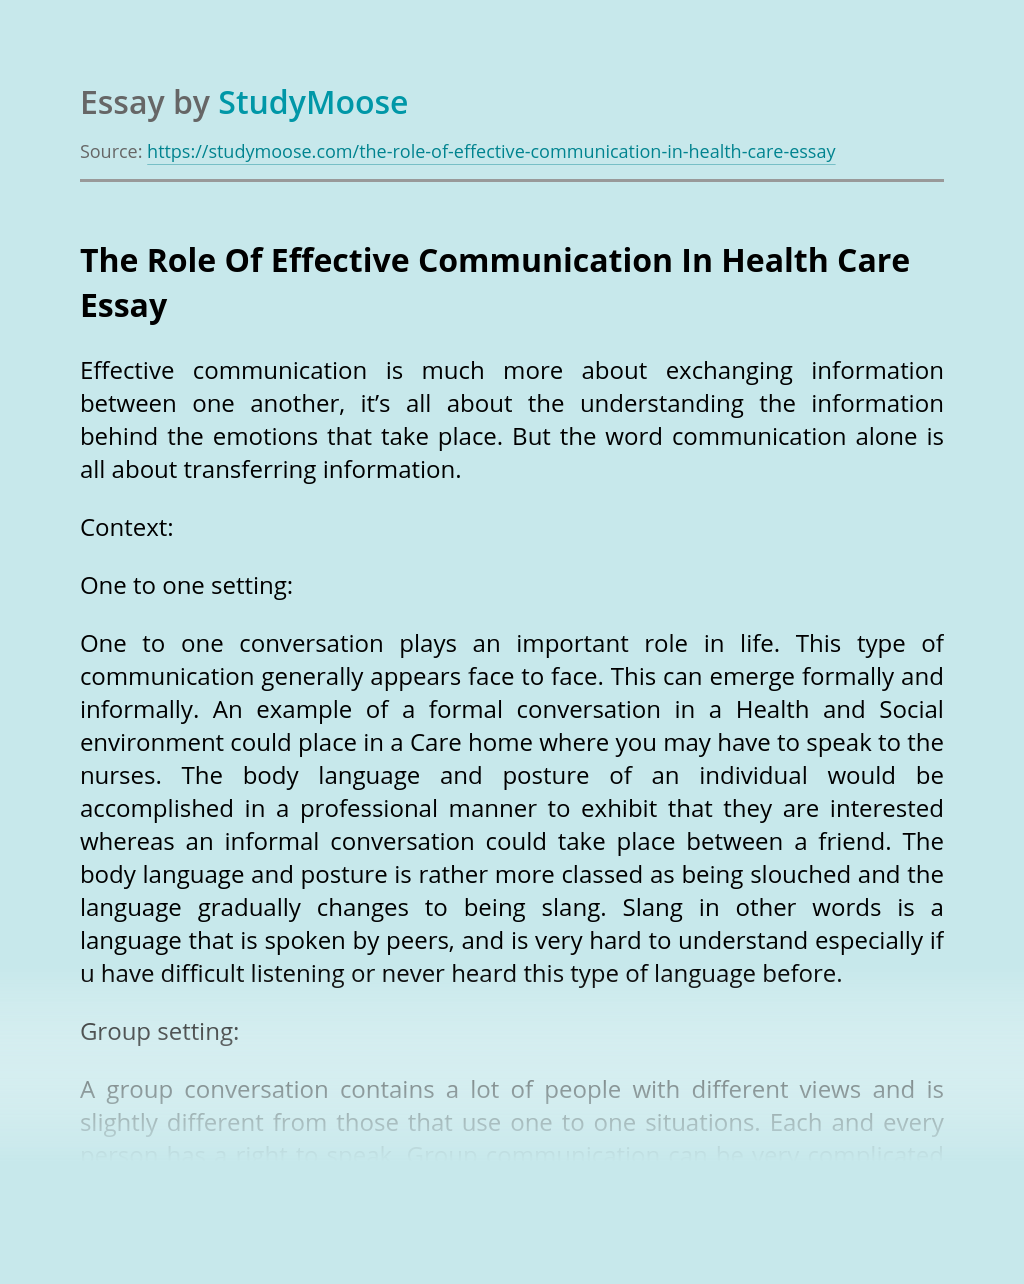 The Role Of Effective Communication In Health Care